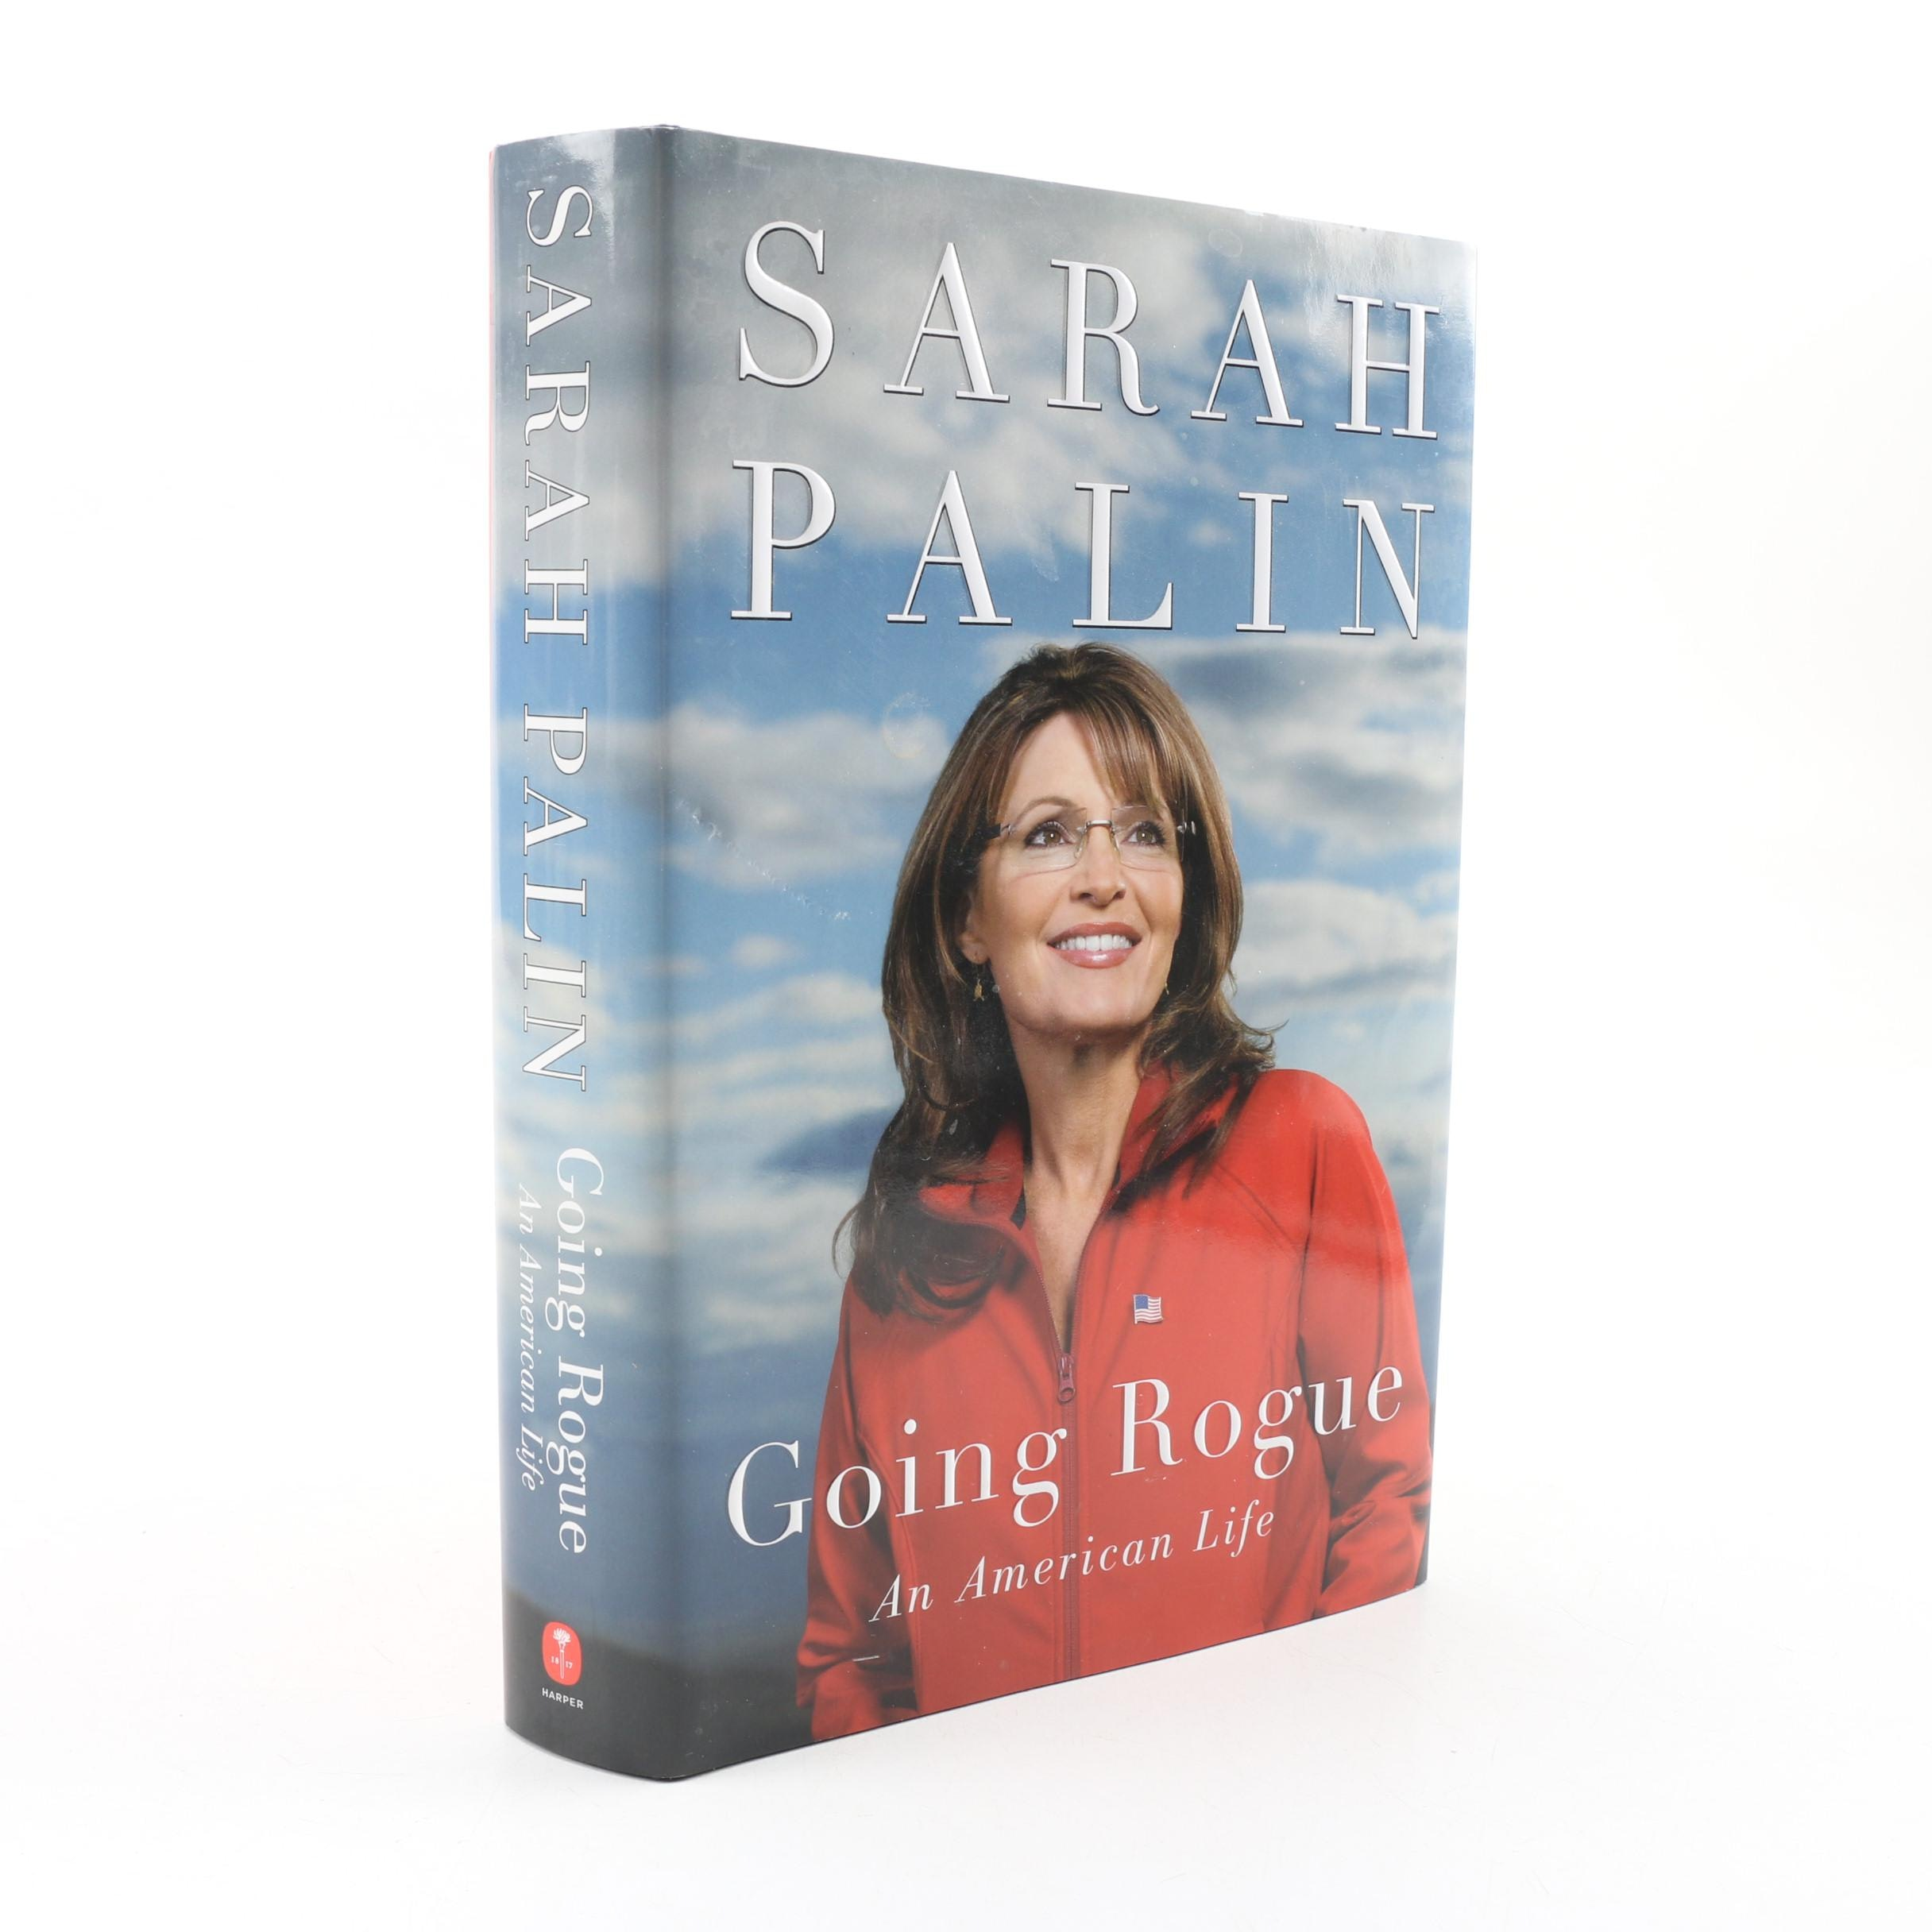 """Signed First Printing """"Going Rogue: An American Life"""" by Sarah Palin, 2009"""